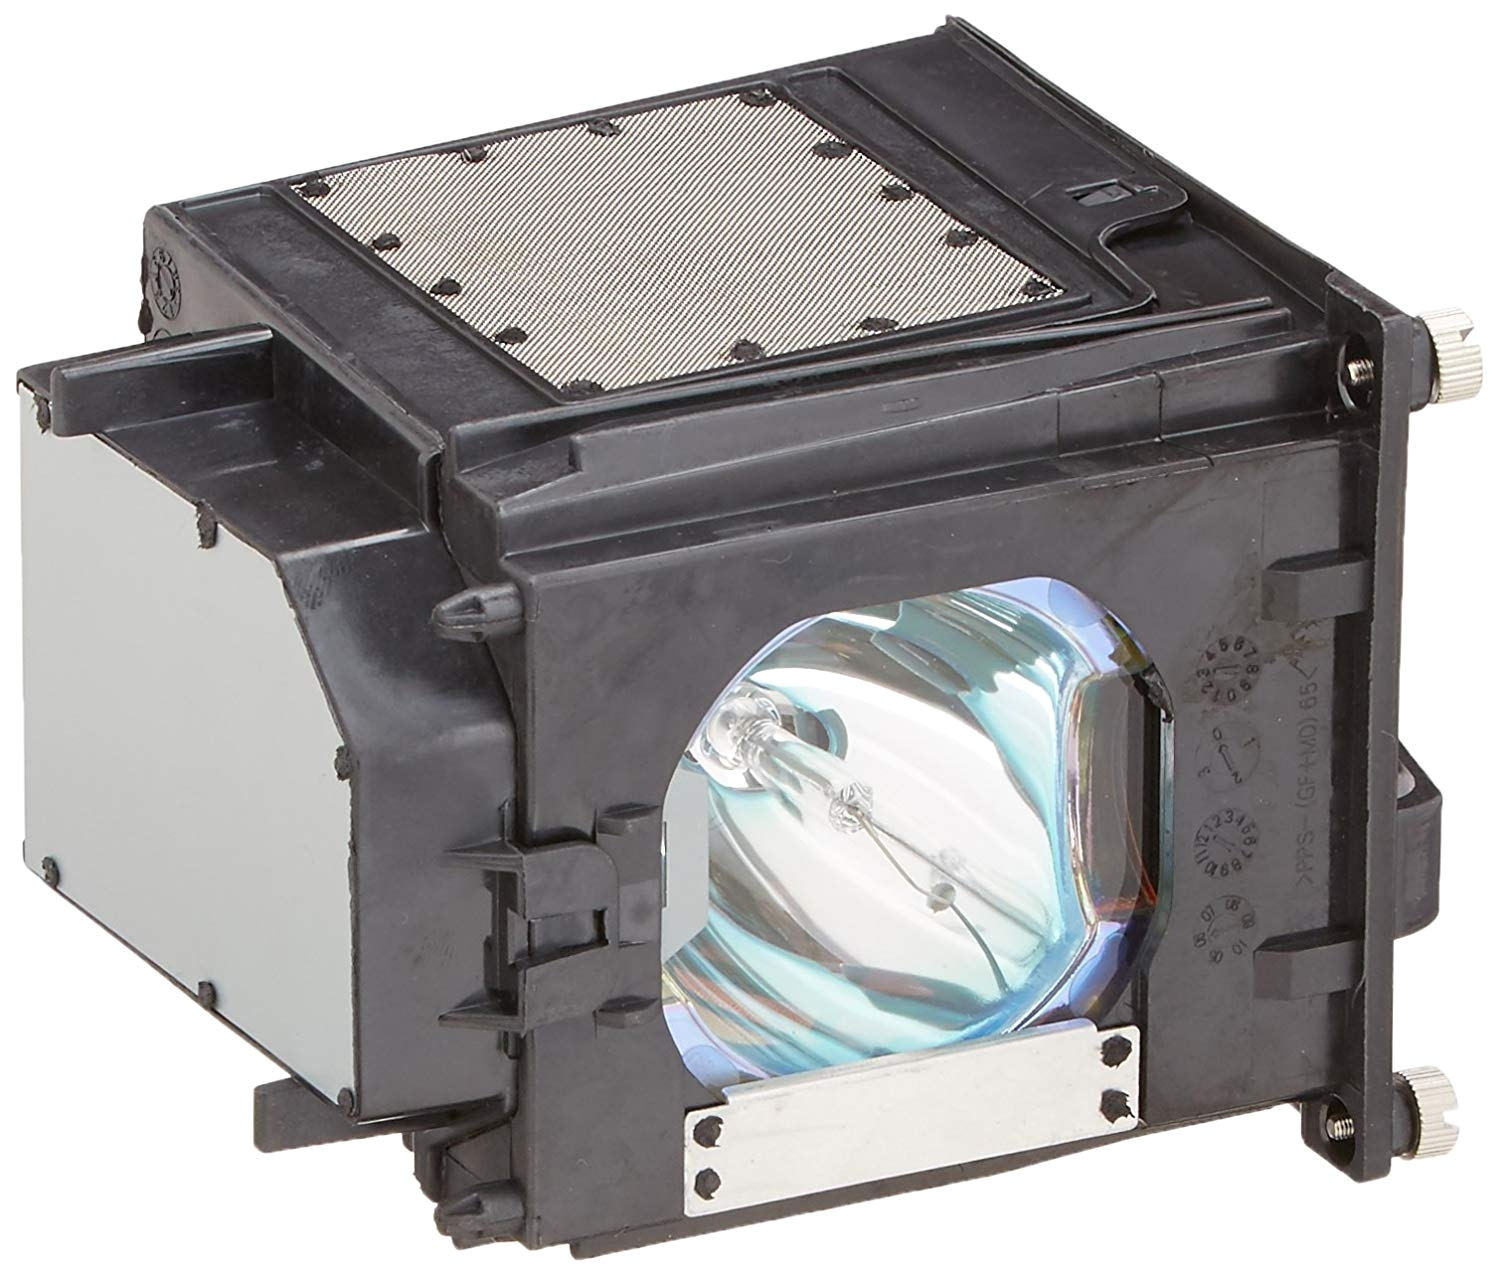 amazon com mitsubishi wd 65831 rear projector tv lamp with housing replacement lamp electronics